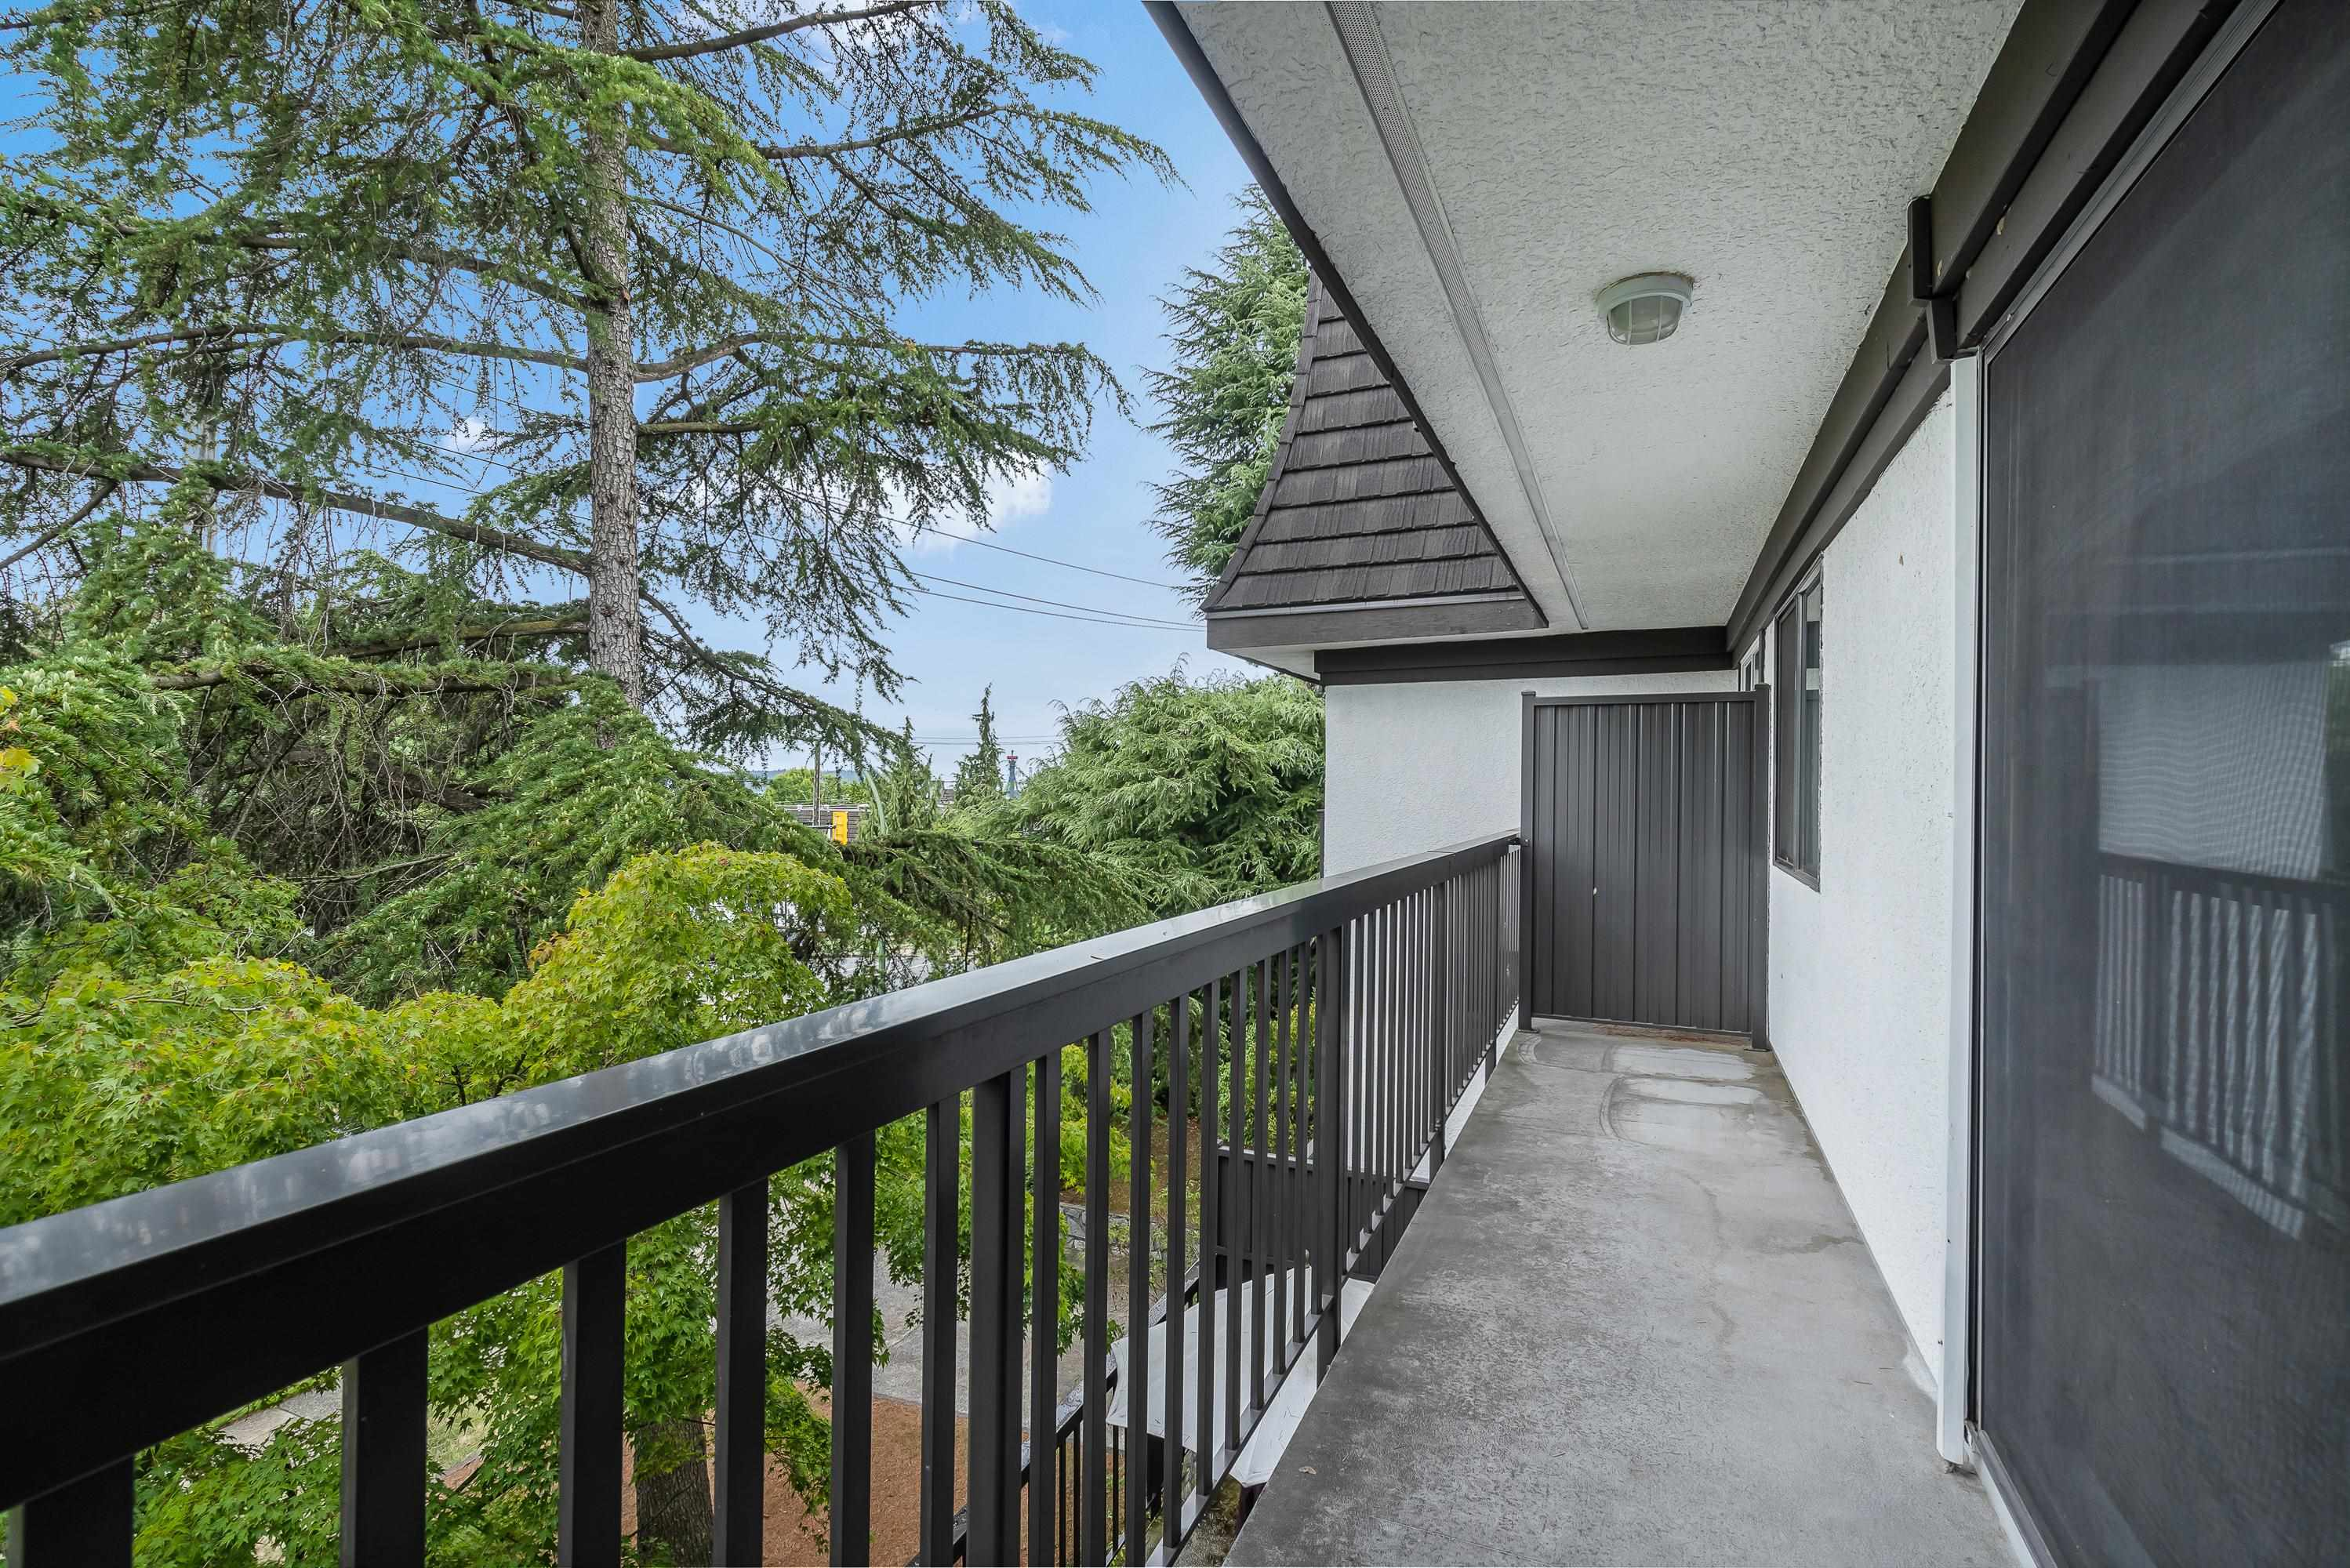 208 270 WEST 3RD STREET - Lower Lonsdale Apartment/Condo for sale, 1 Bedroom (R2615758) - #15